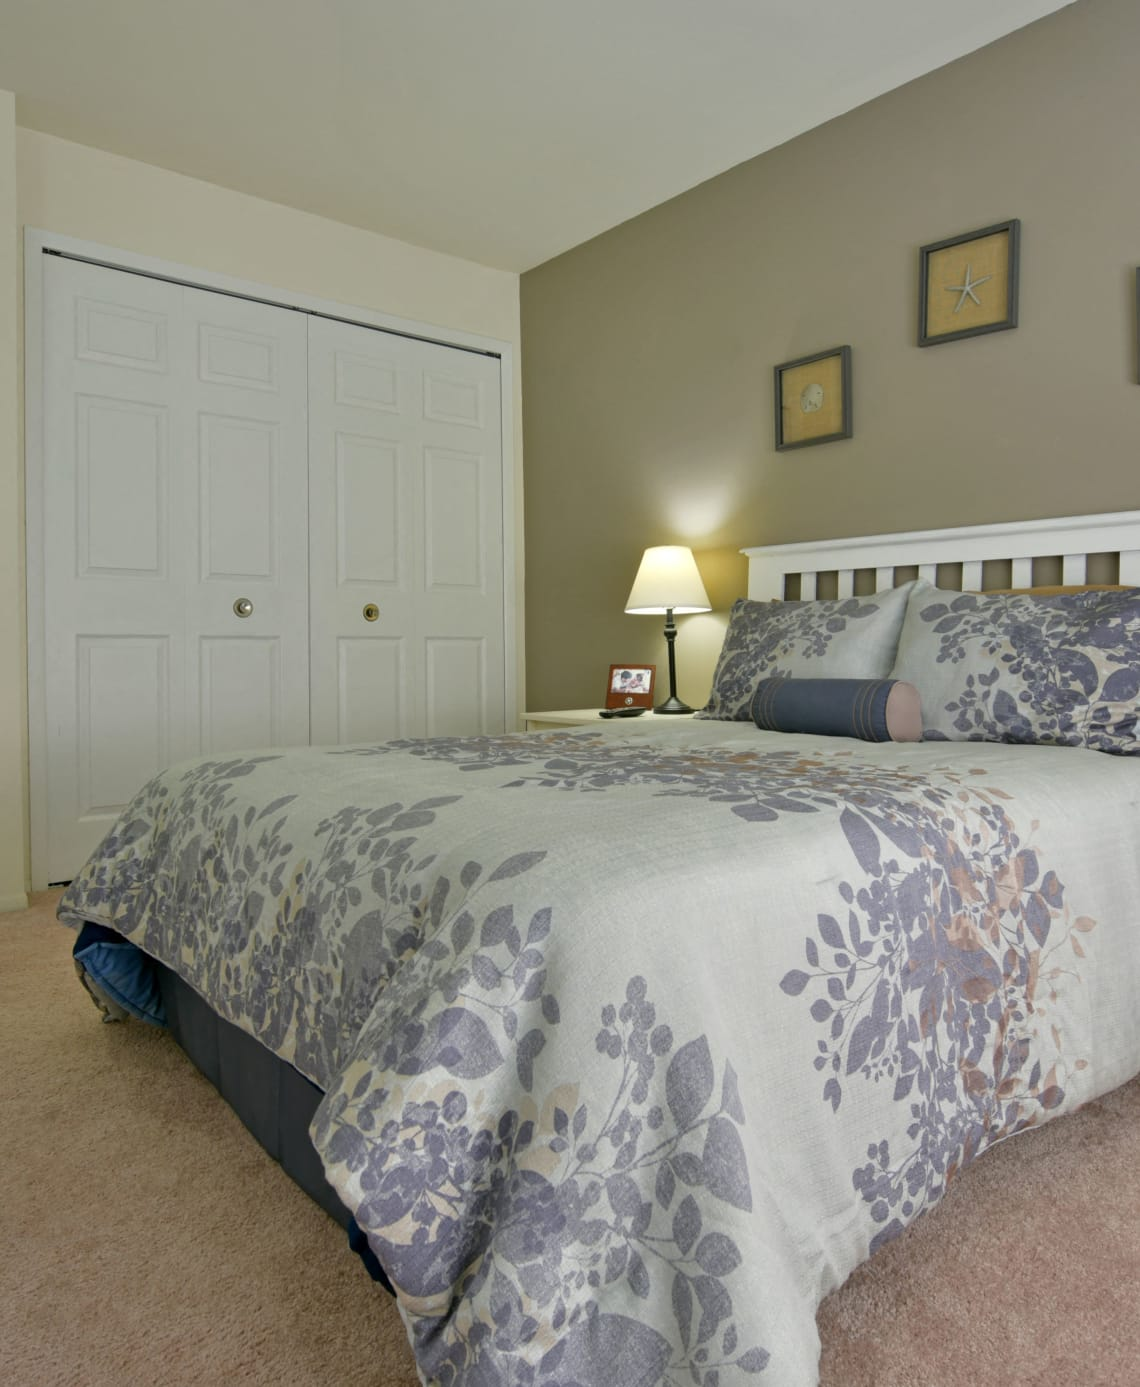 Bedroom with Large Closet at Sycamore Creek Apartments, Orion, MI